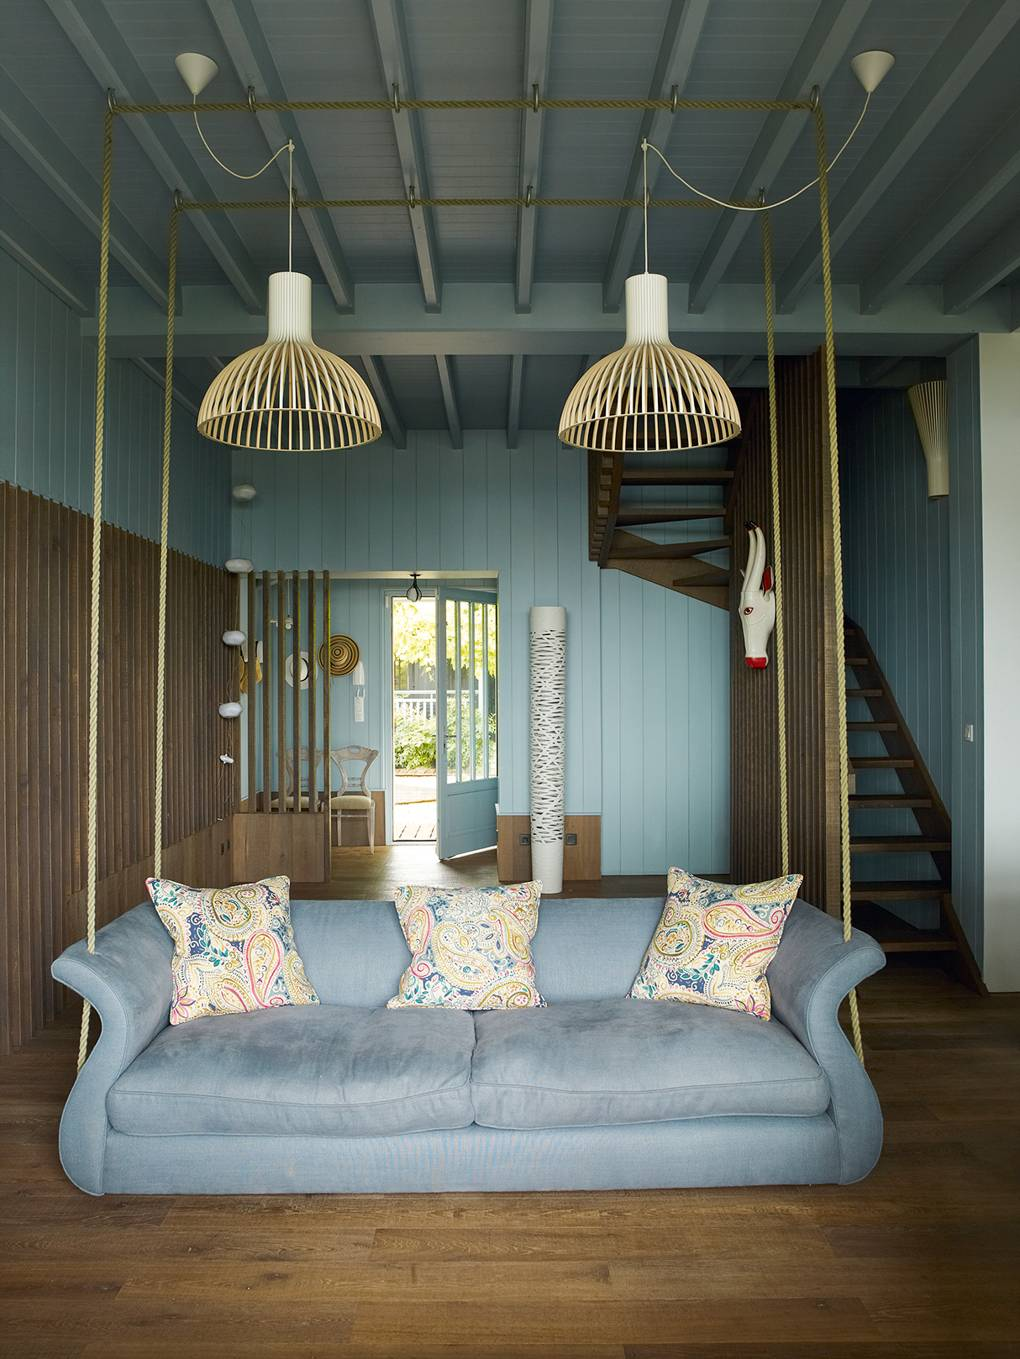 A picture-perfect beach house on Cap Ferret